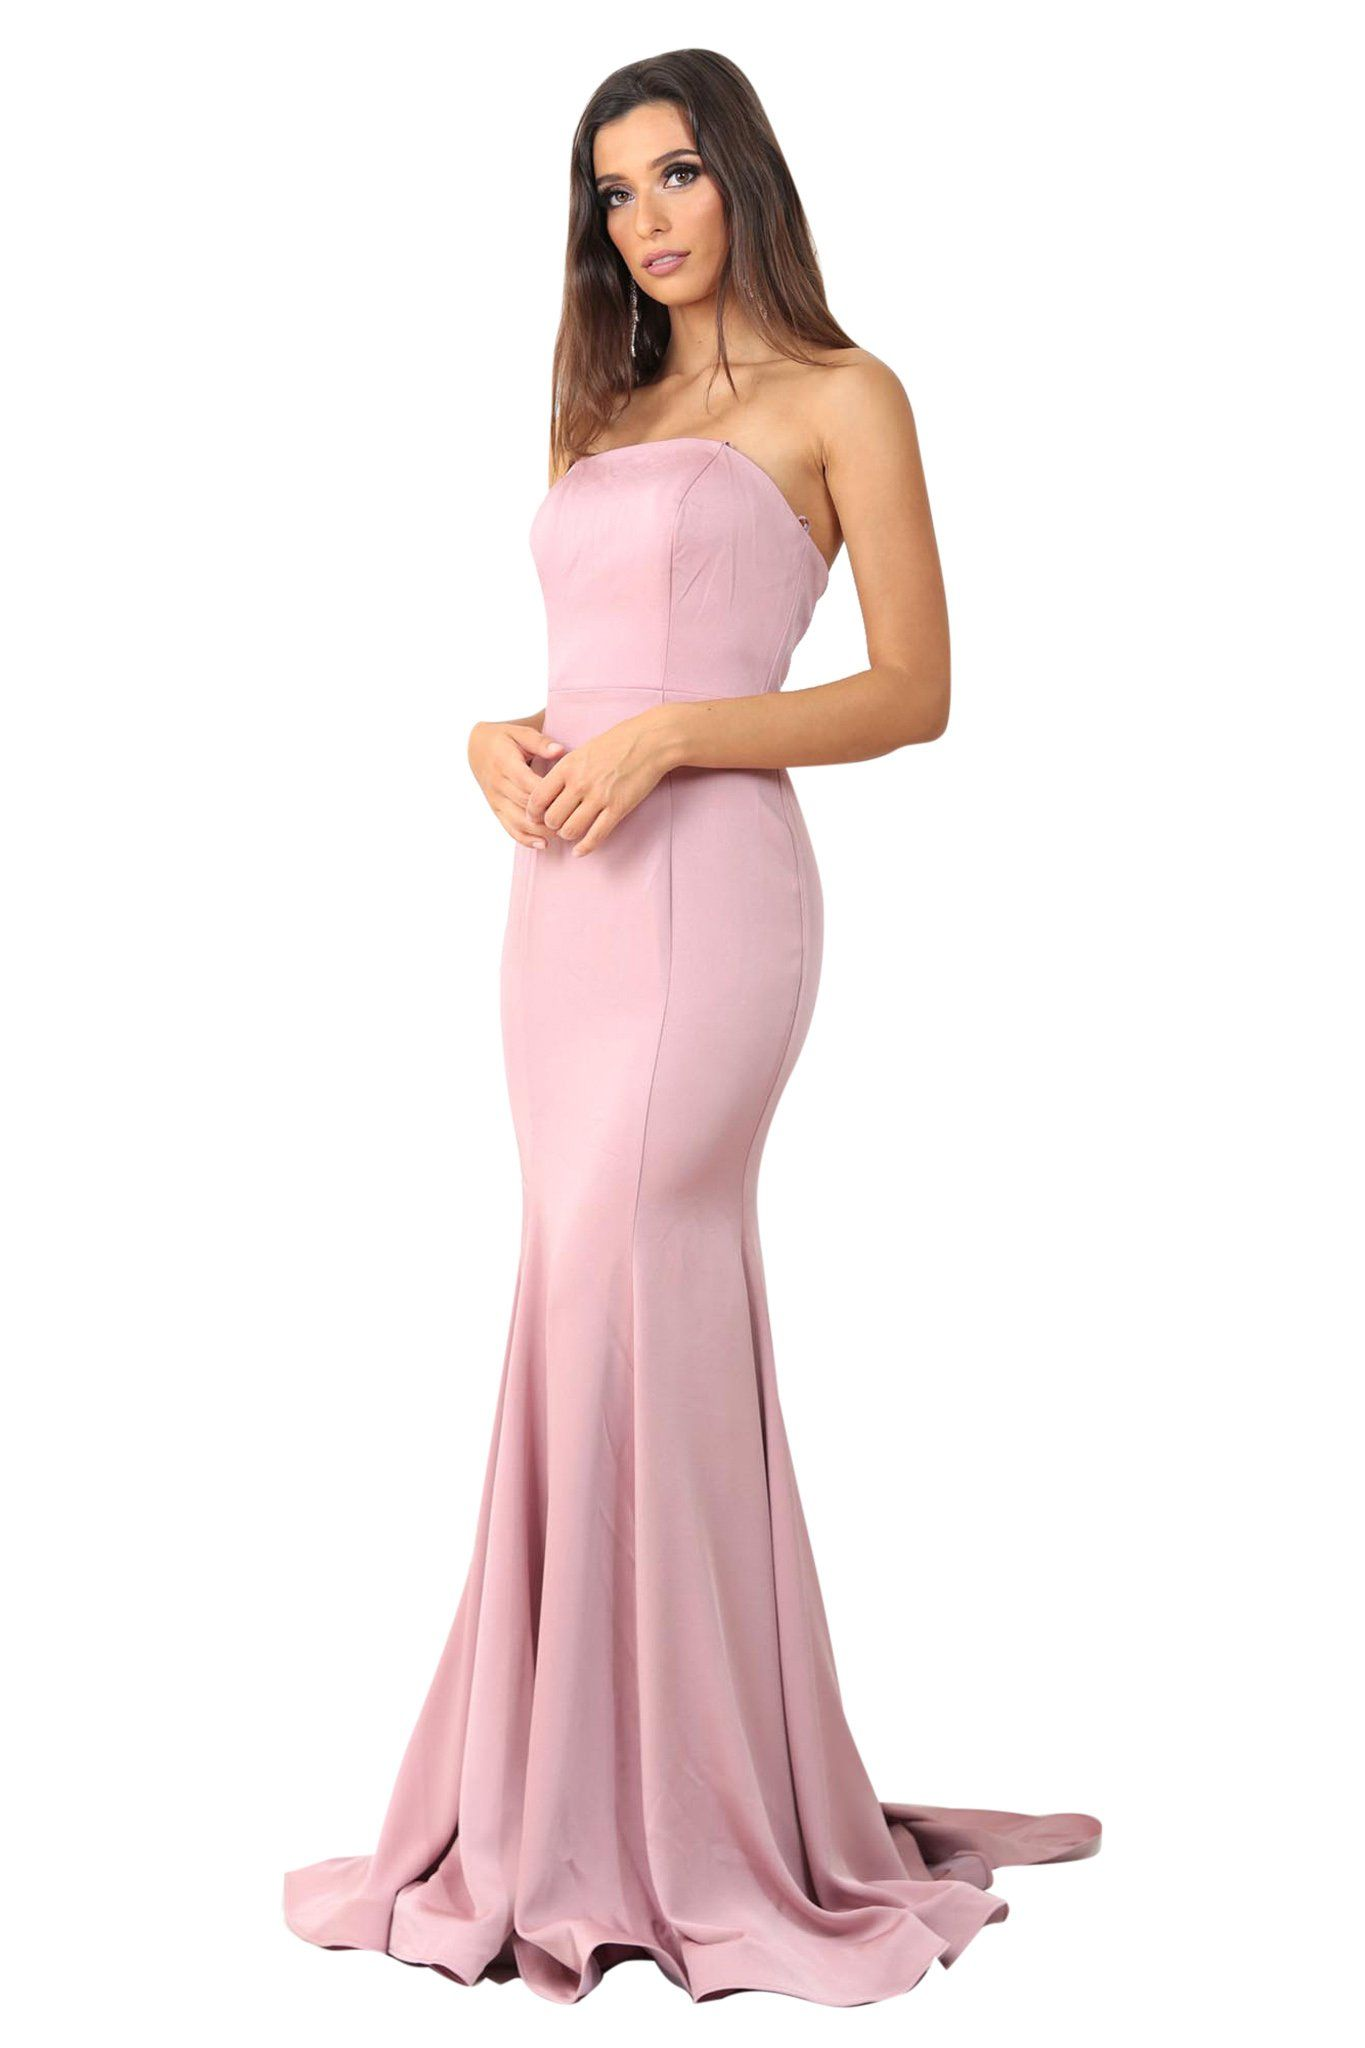 Blush pink strapless straight neckline boned bodice fitted evening gown with floor sweeping train